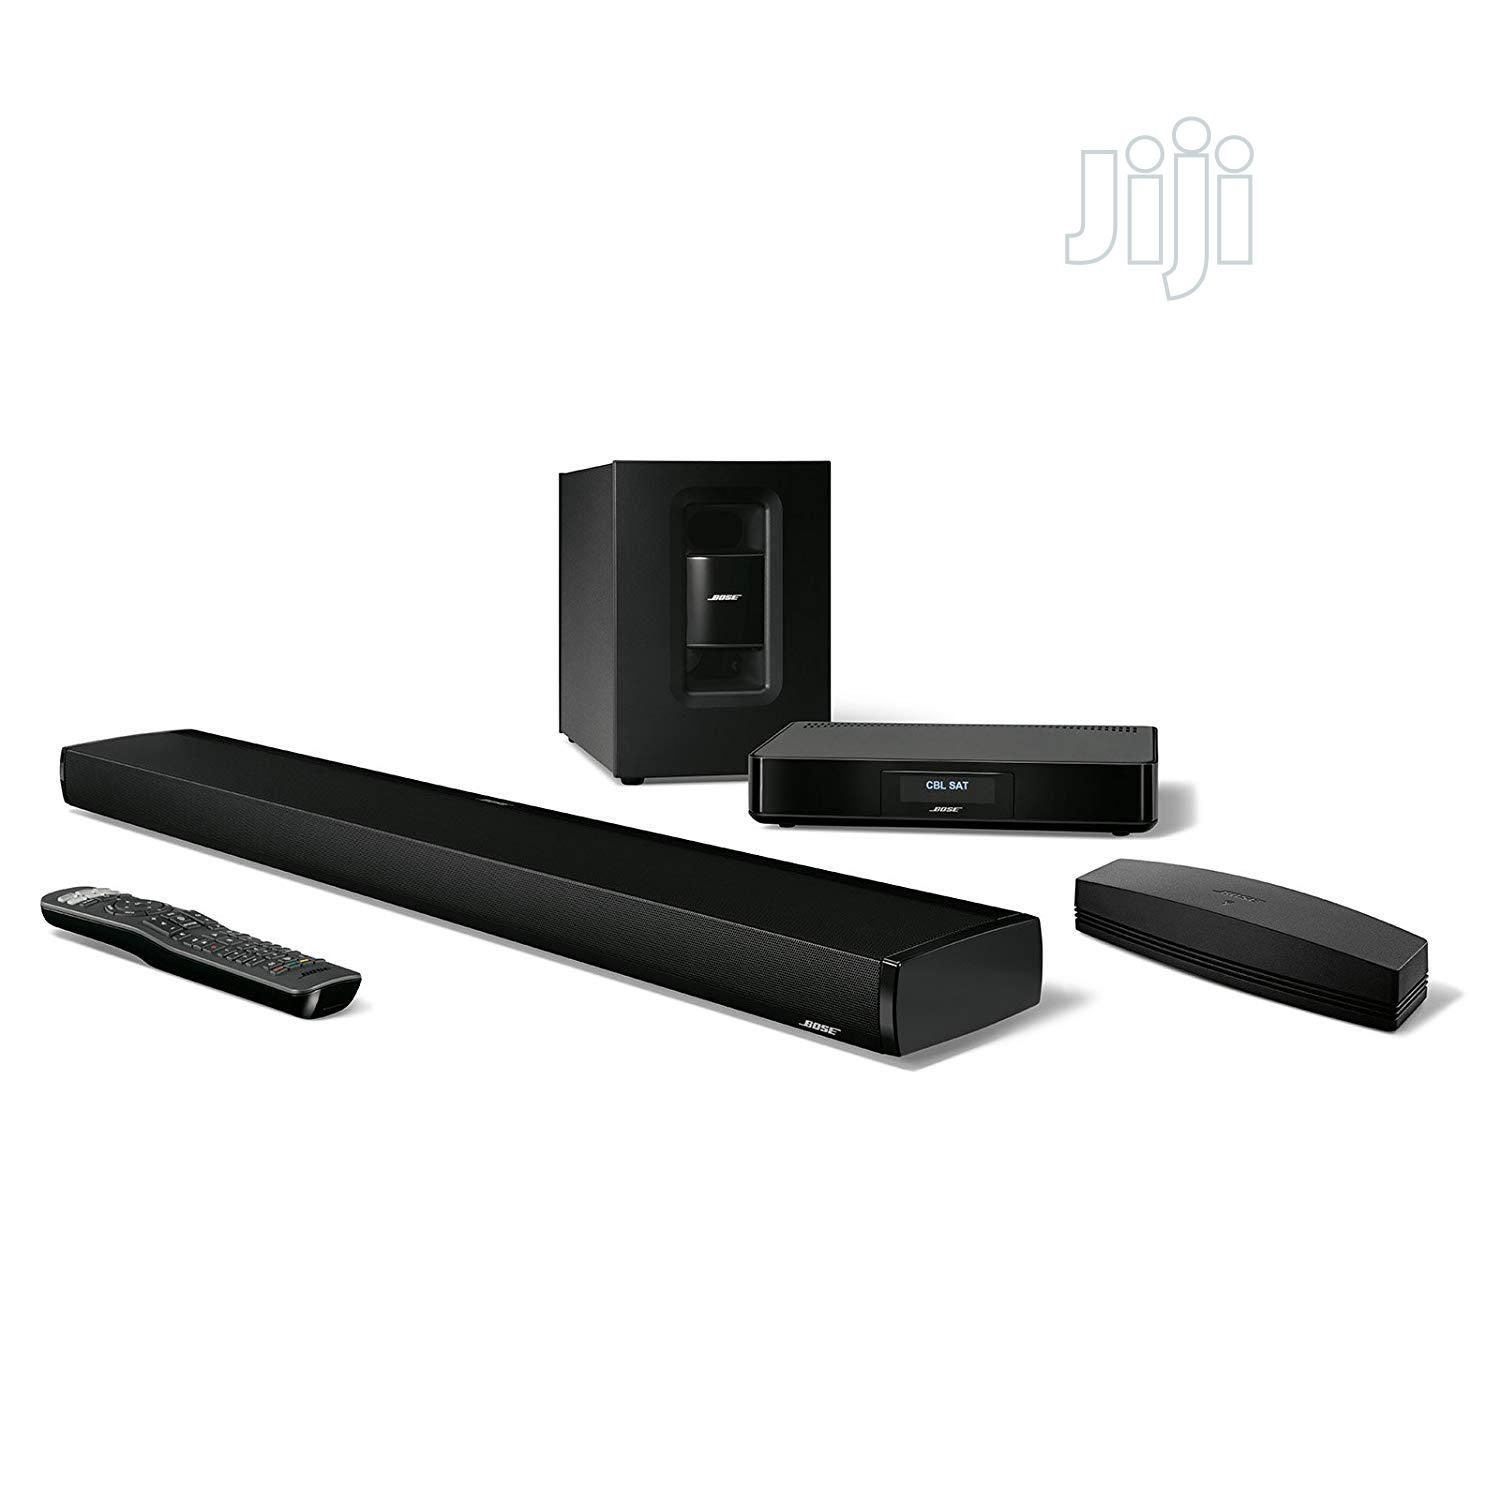 Bose Soundtouch 130 Home Theater System - Black